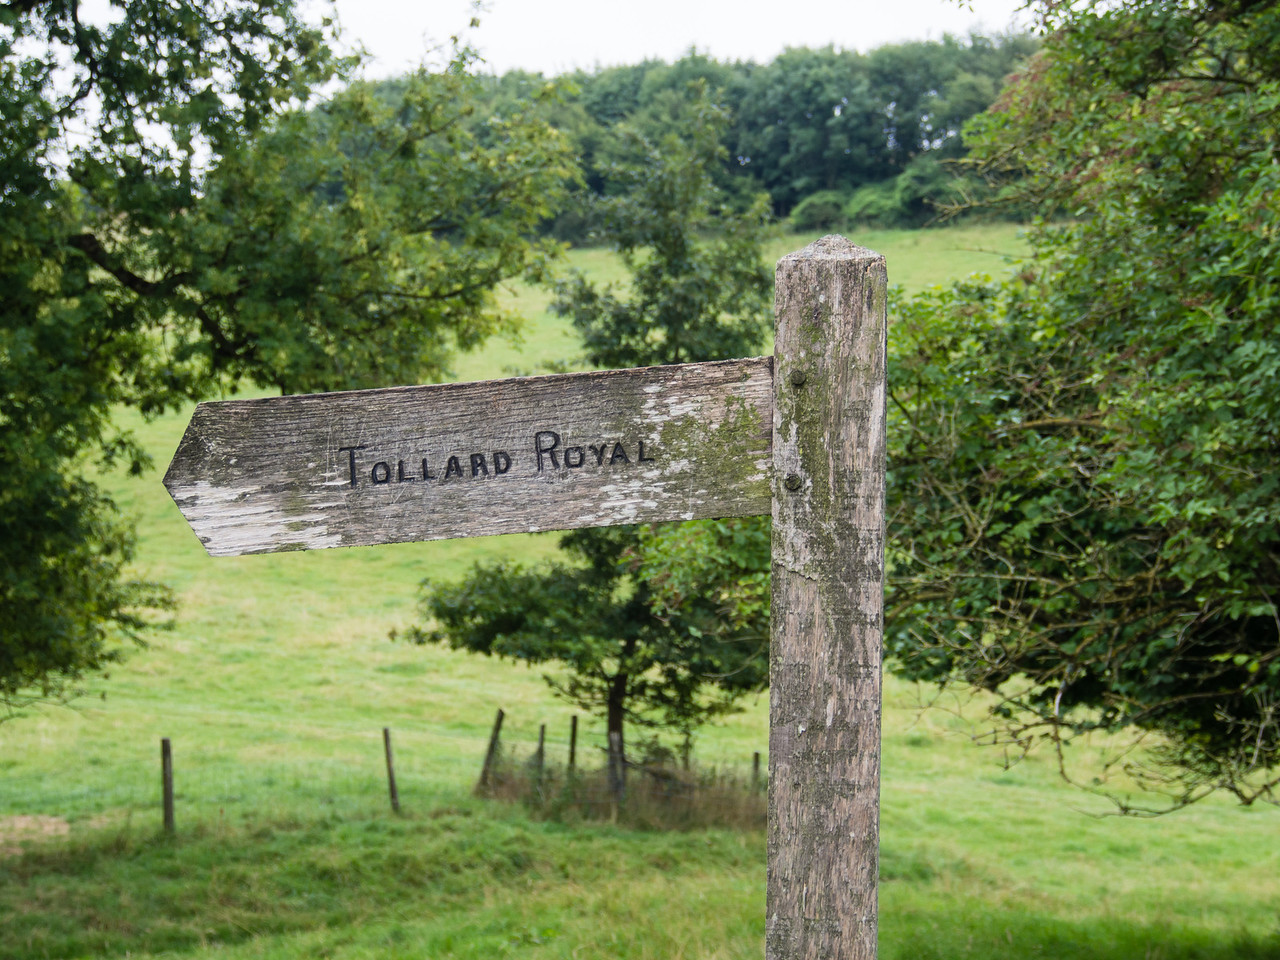 This way to Tollard Royal